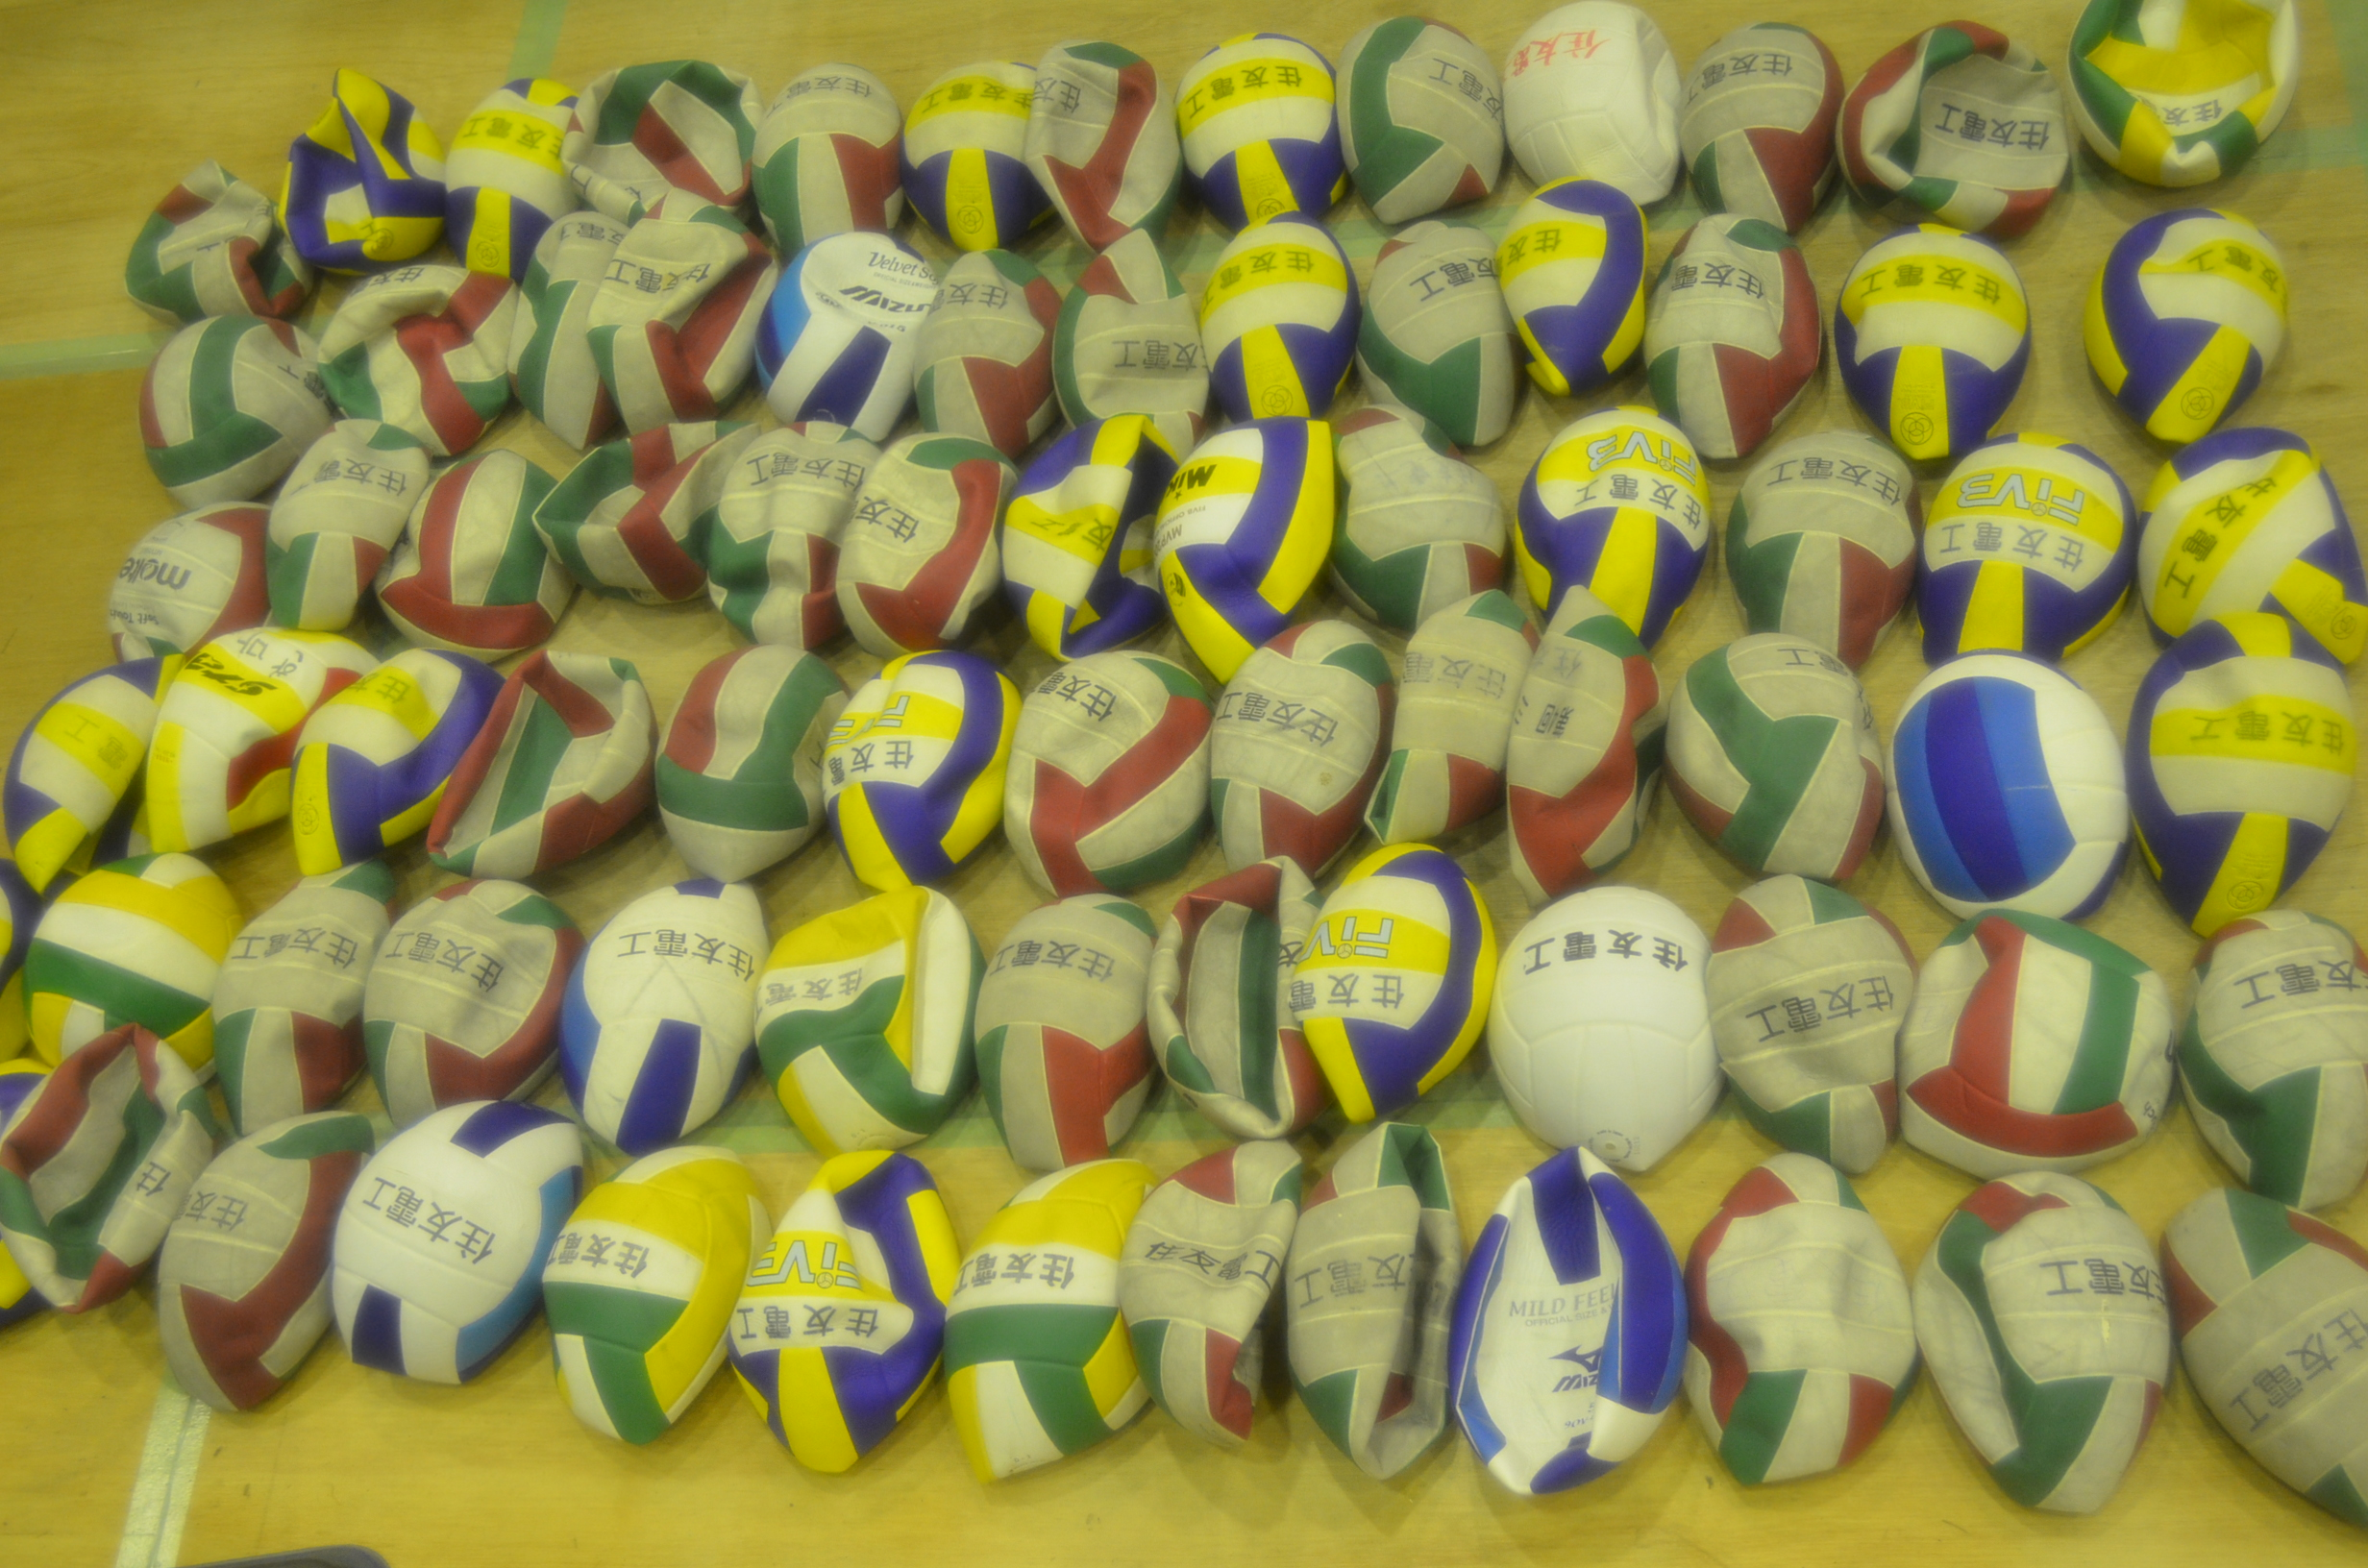 Donated volleyballs